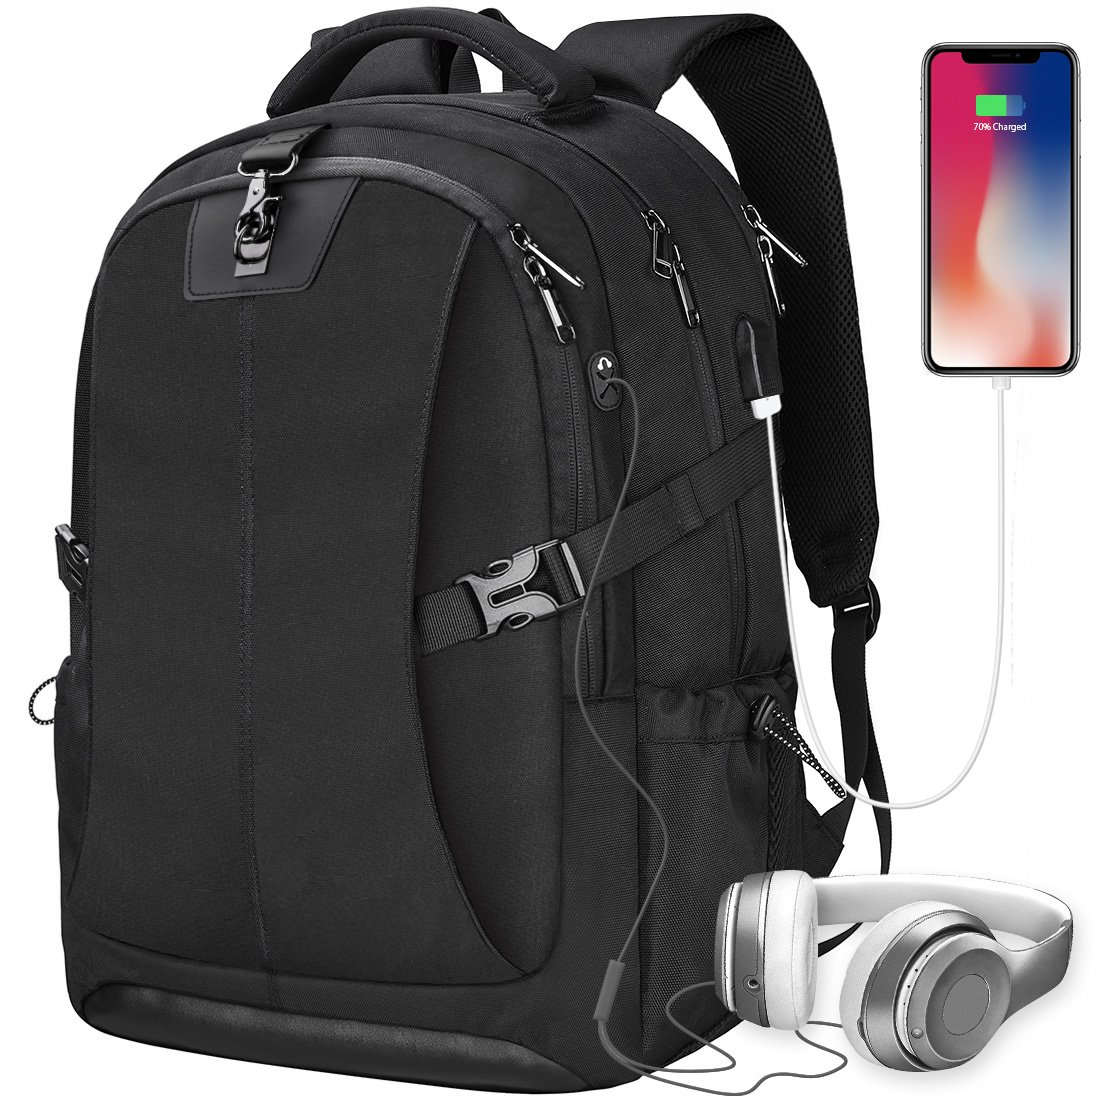 f2342900ae5 Laptop Backpack 17.3 Inch Anti-theft Waterproof Travel Rucksack USB  Charging Port Business Work College School Large Compartment Outdoor Gaming  Computer Bag ...